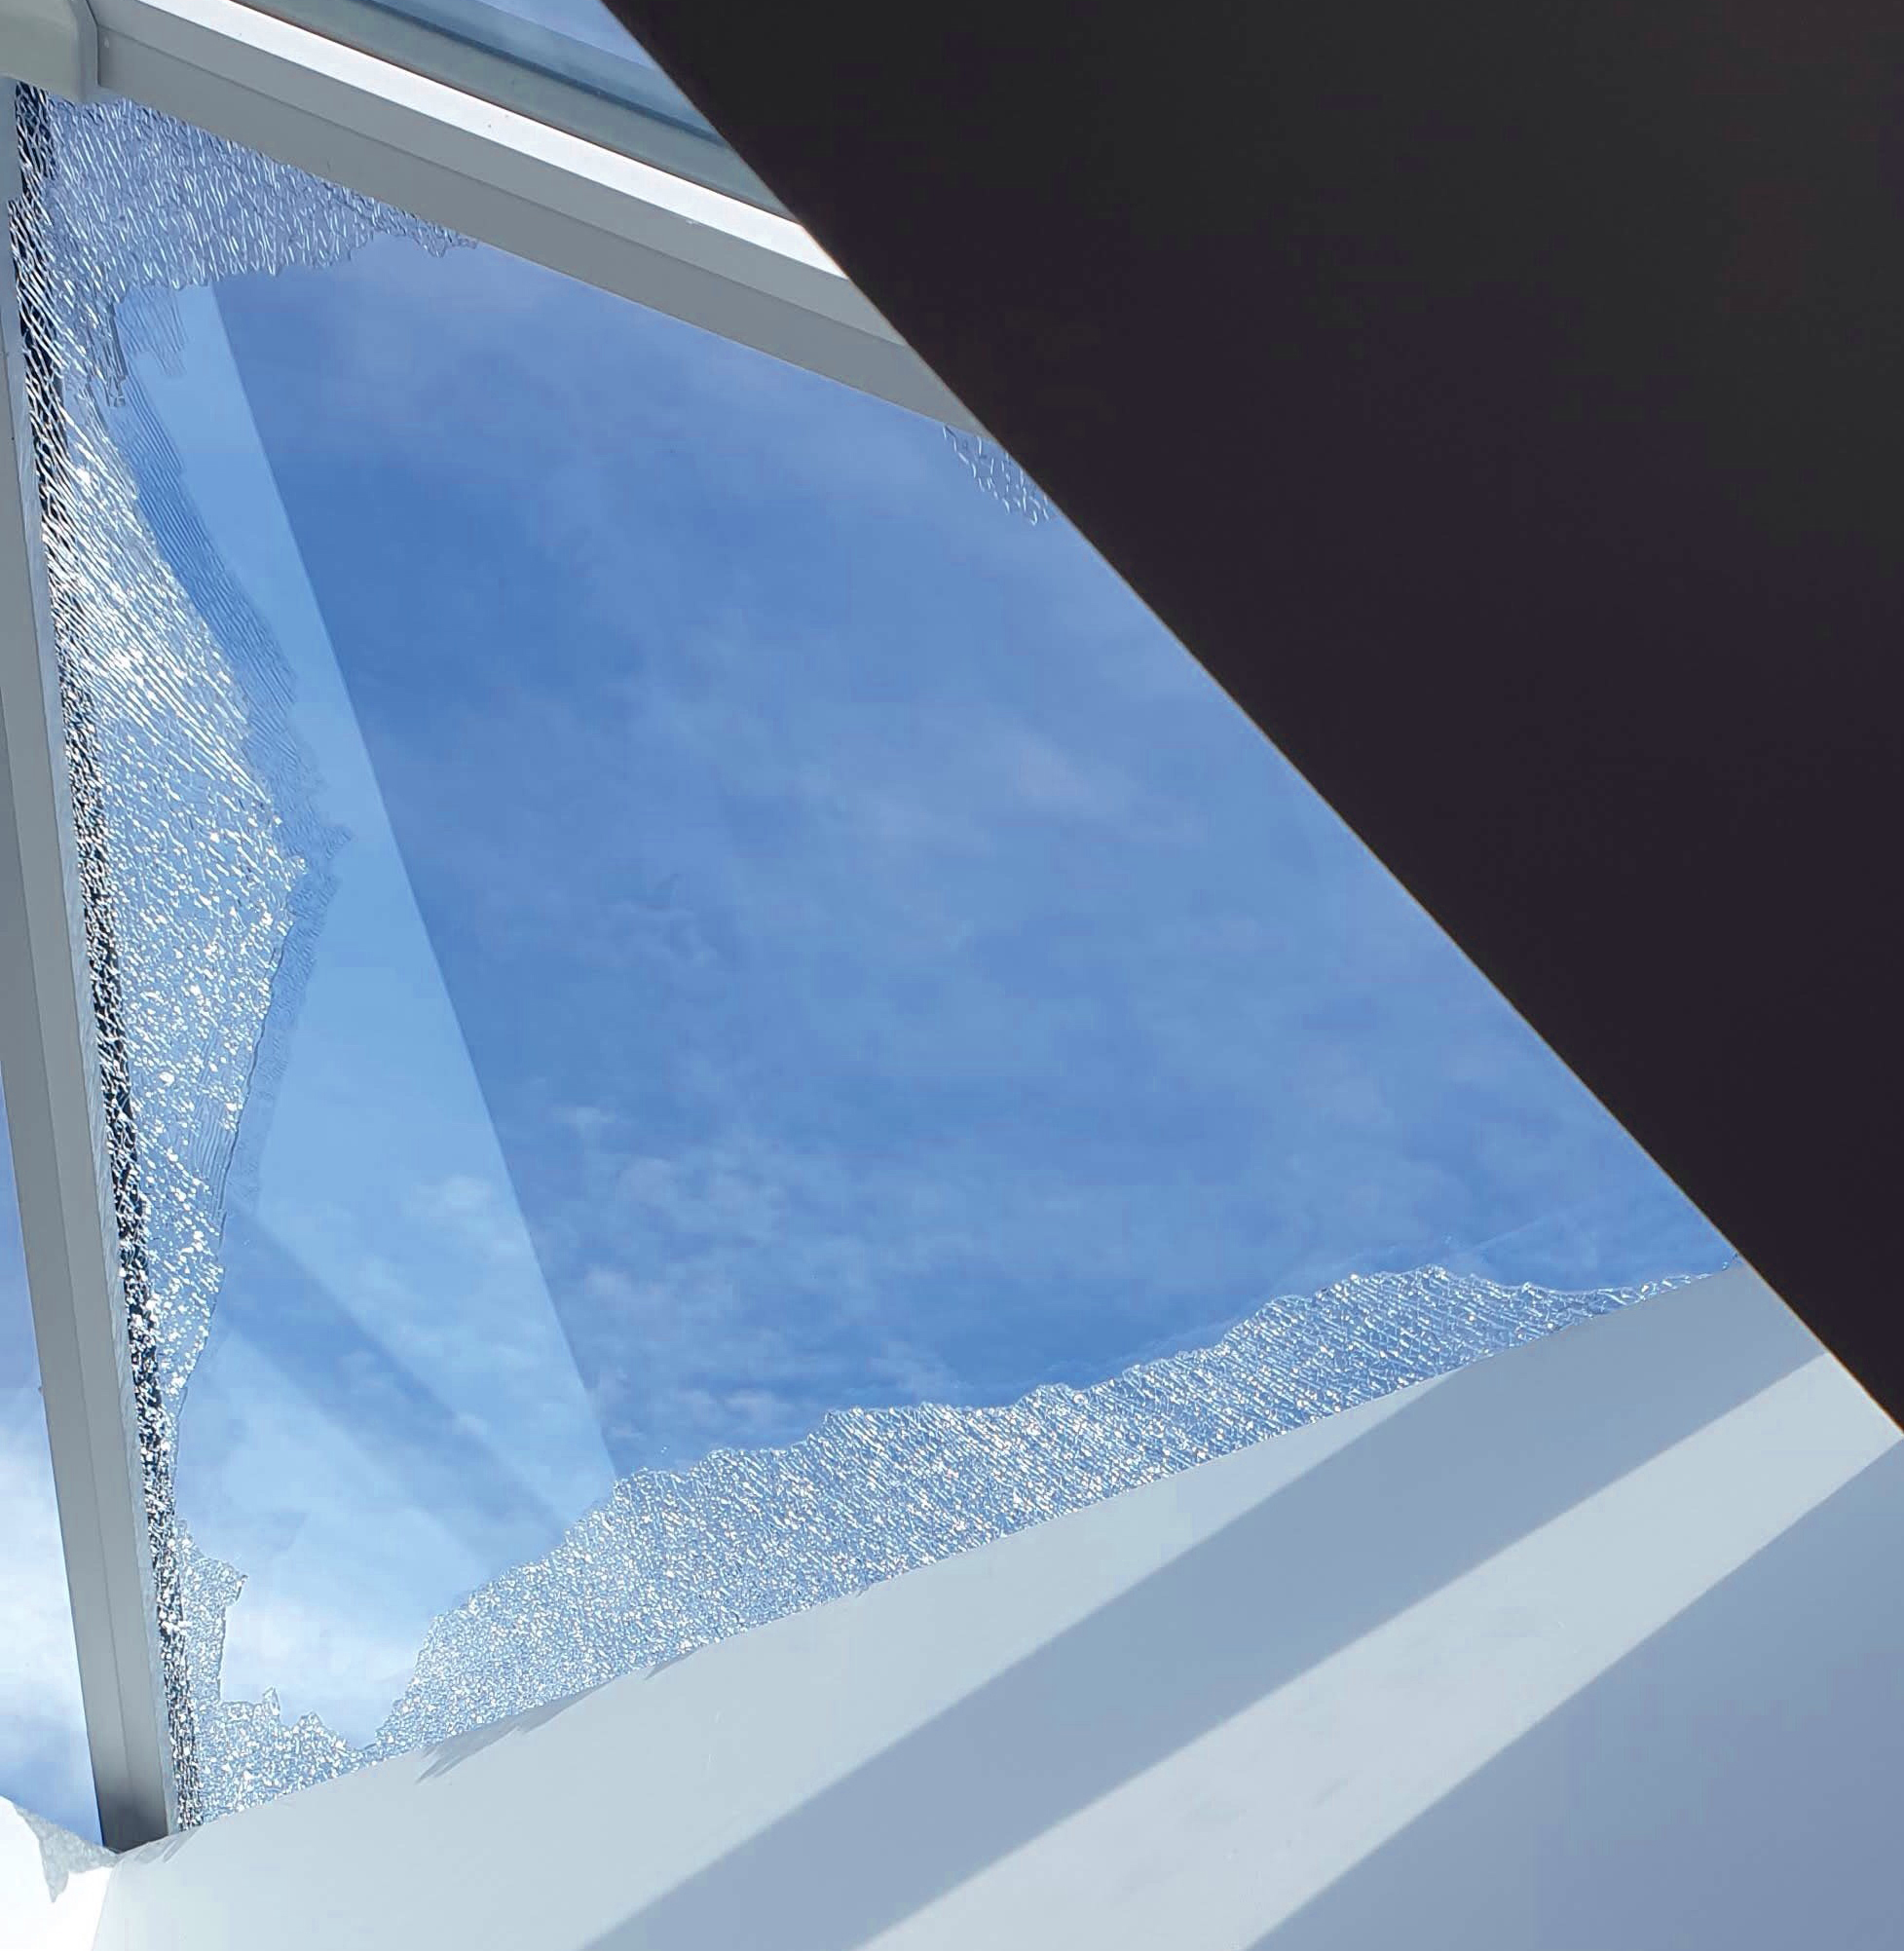 NARM safety guidance on glass endorsed by ACR